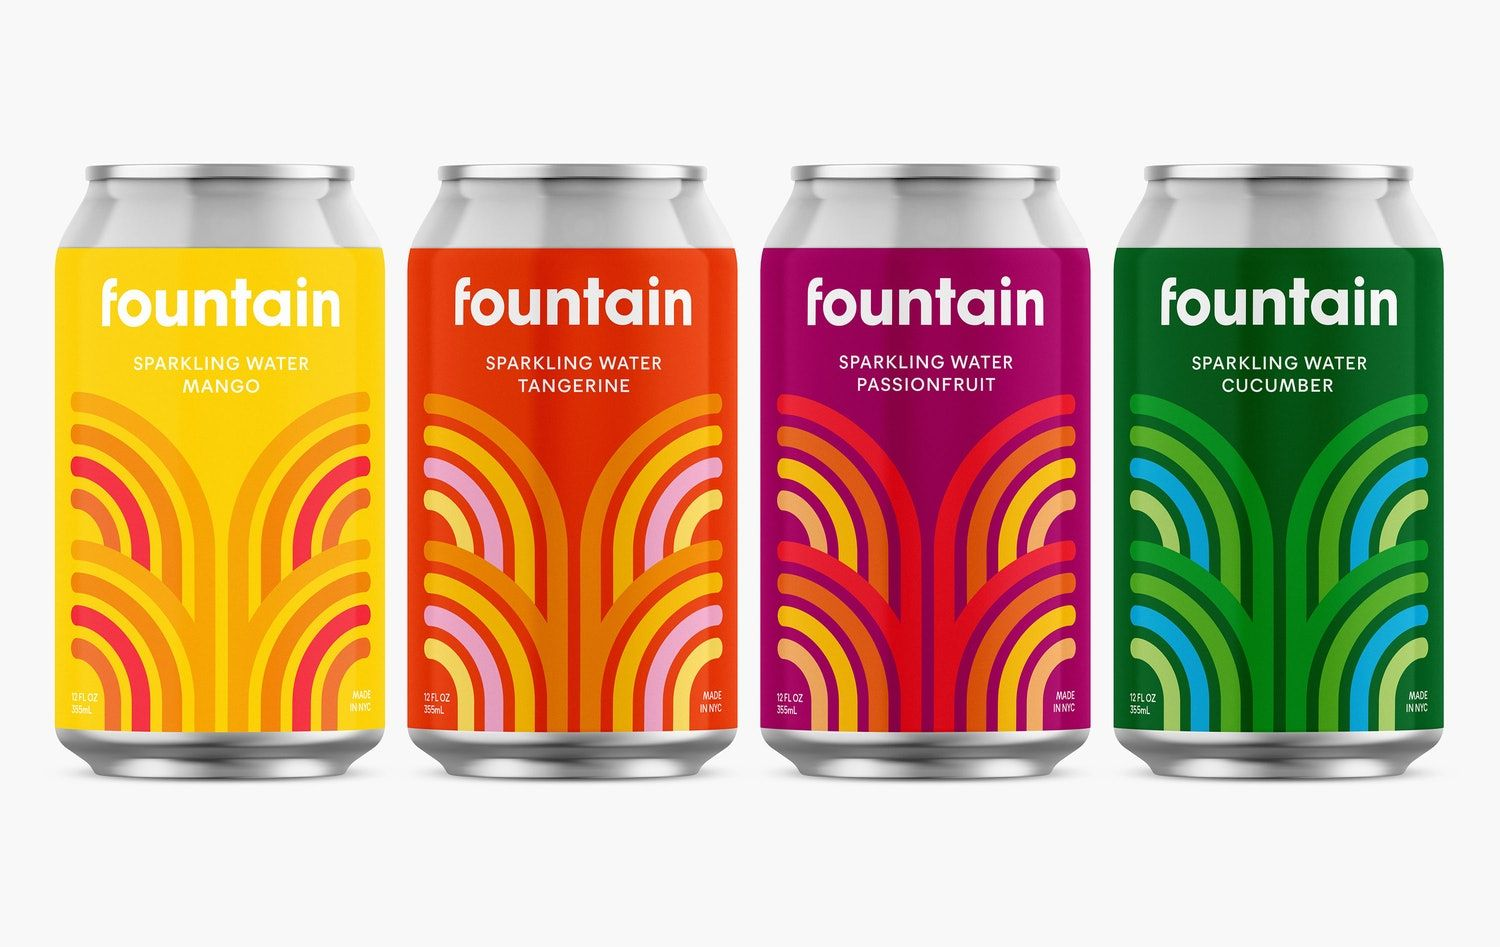 Pentagram Helps Elevate Cbd Sparkling Water Brand Fountain Dieline In 2020 Water Branding Sparkling Drinks Sparkling Water